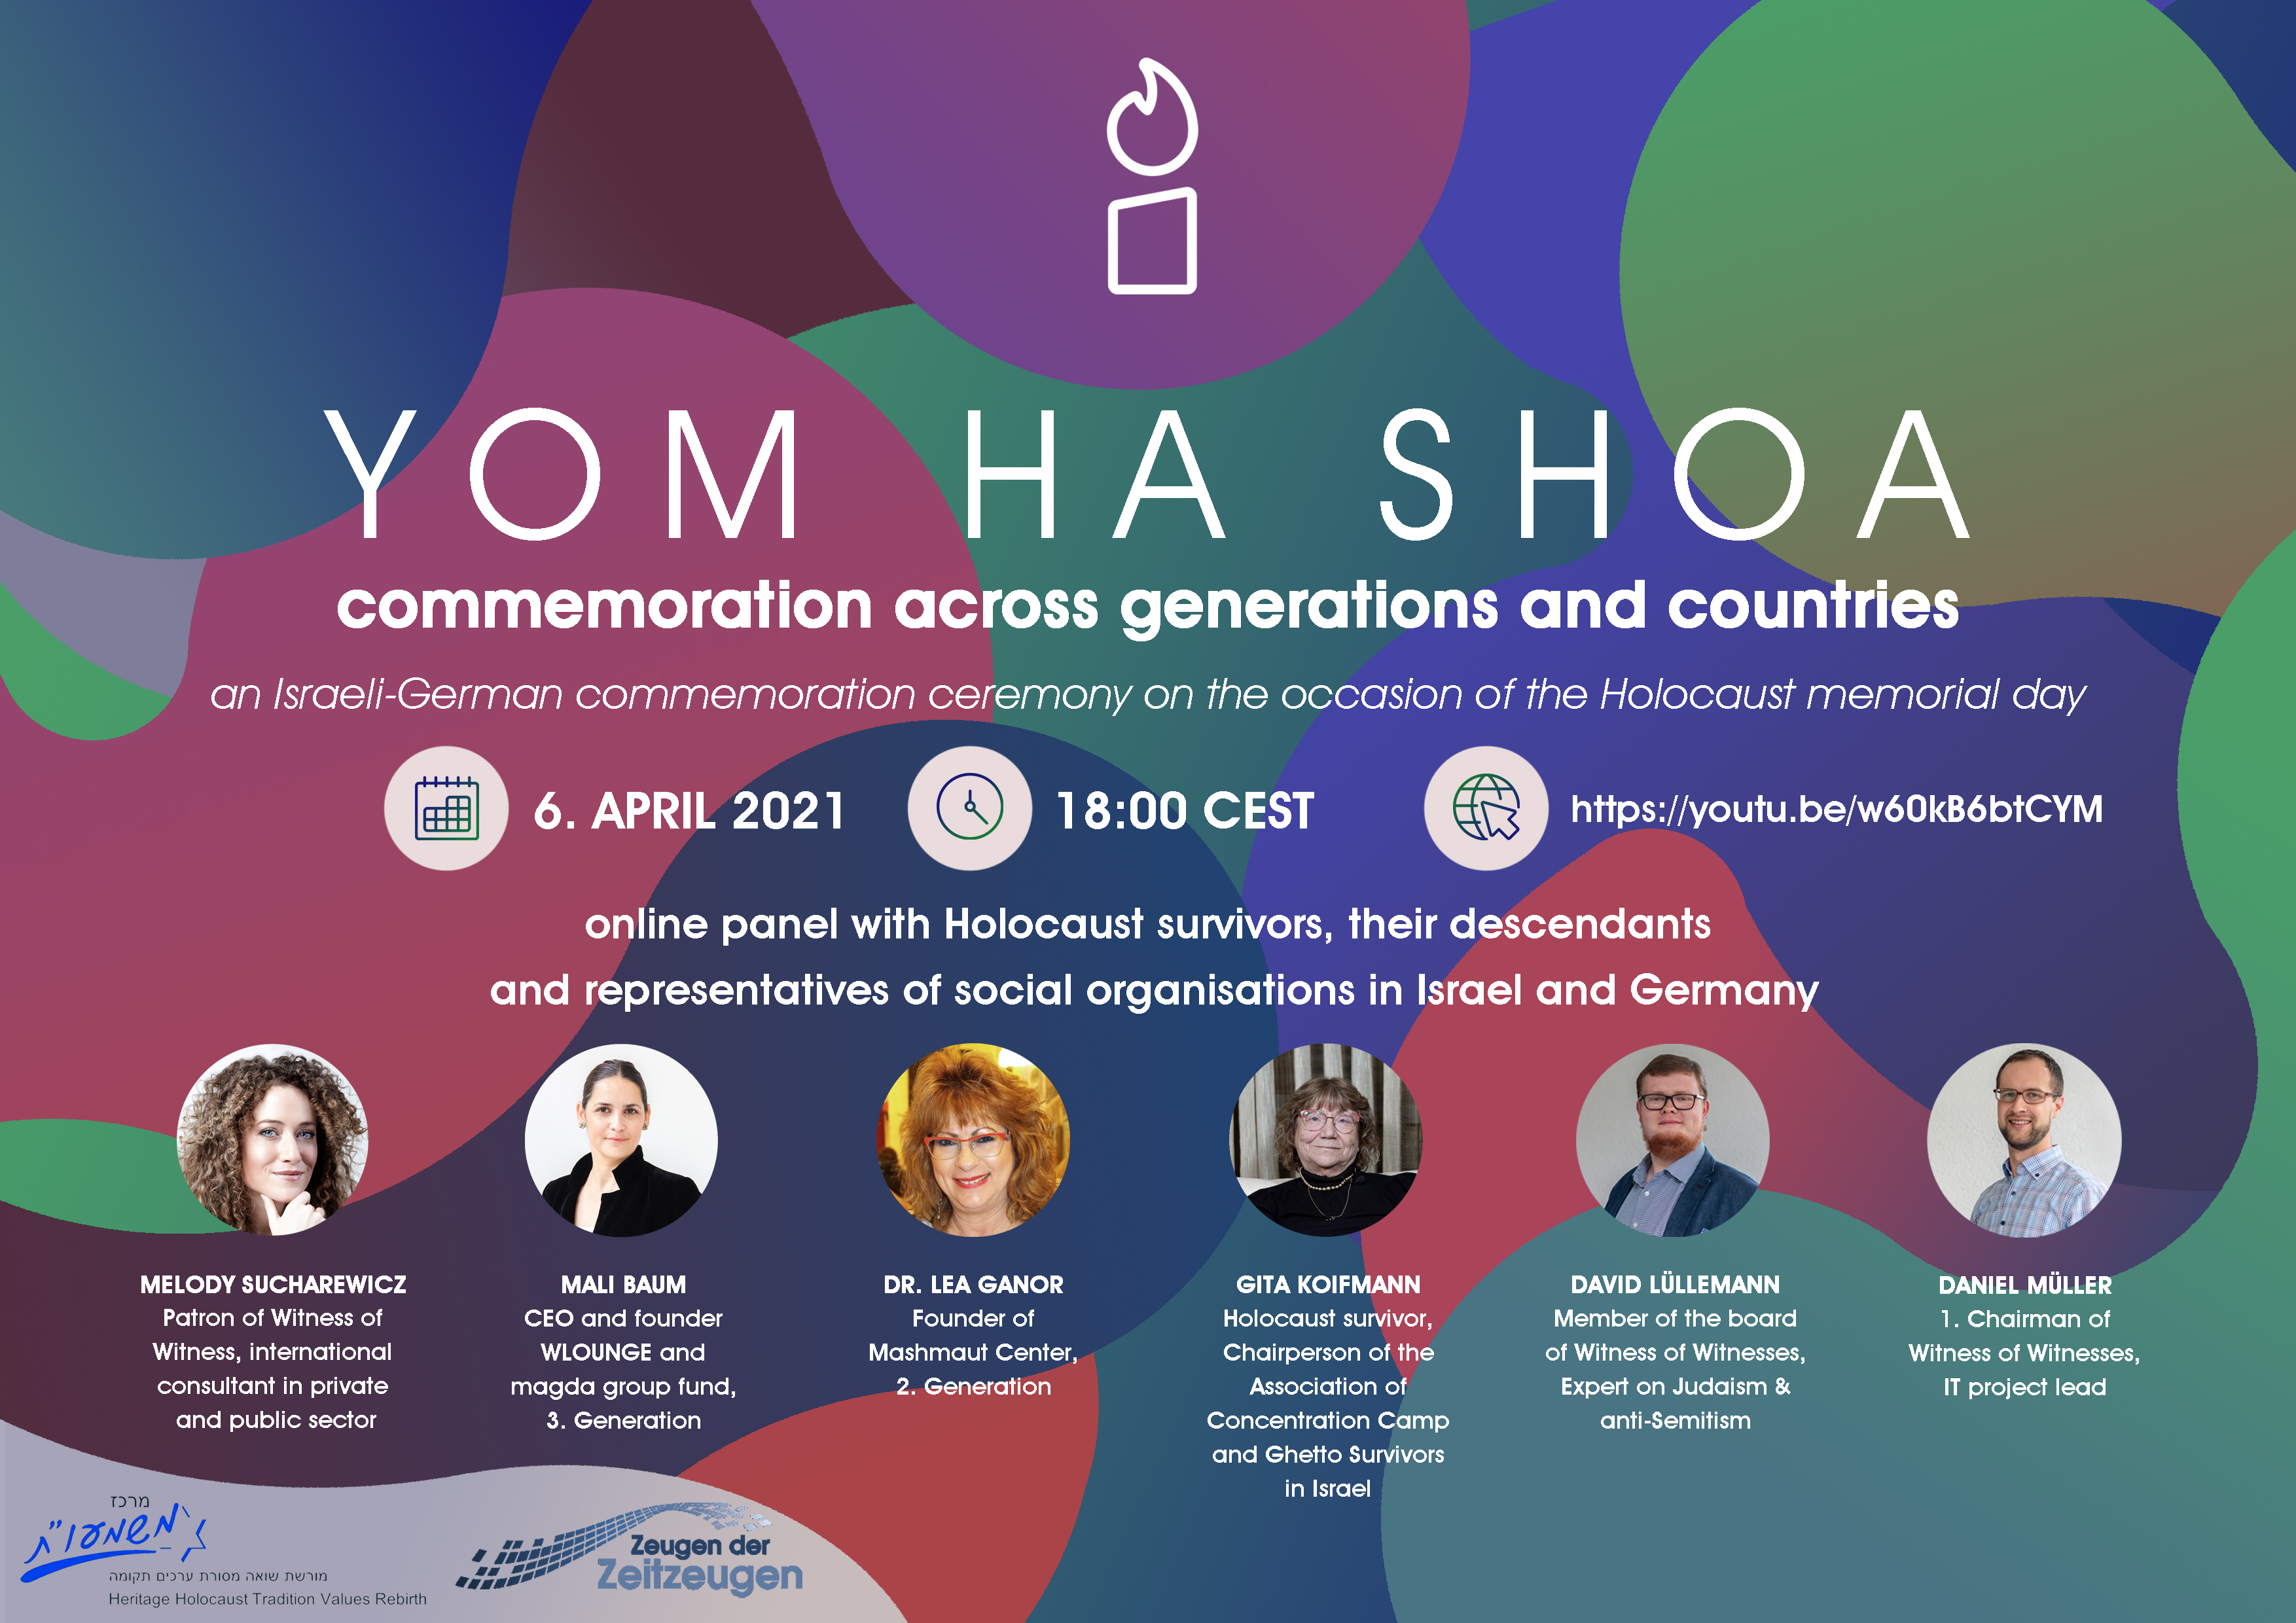 Yom Ha Shoa | an Israeli-German commemoration ceremony